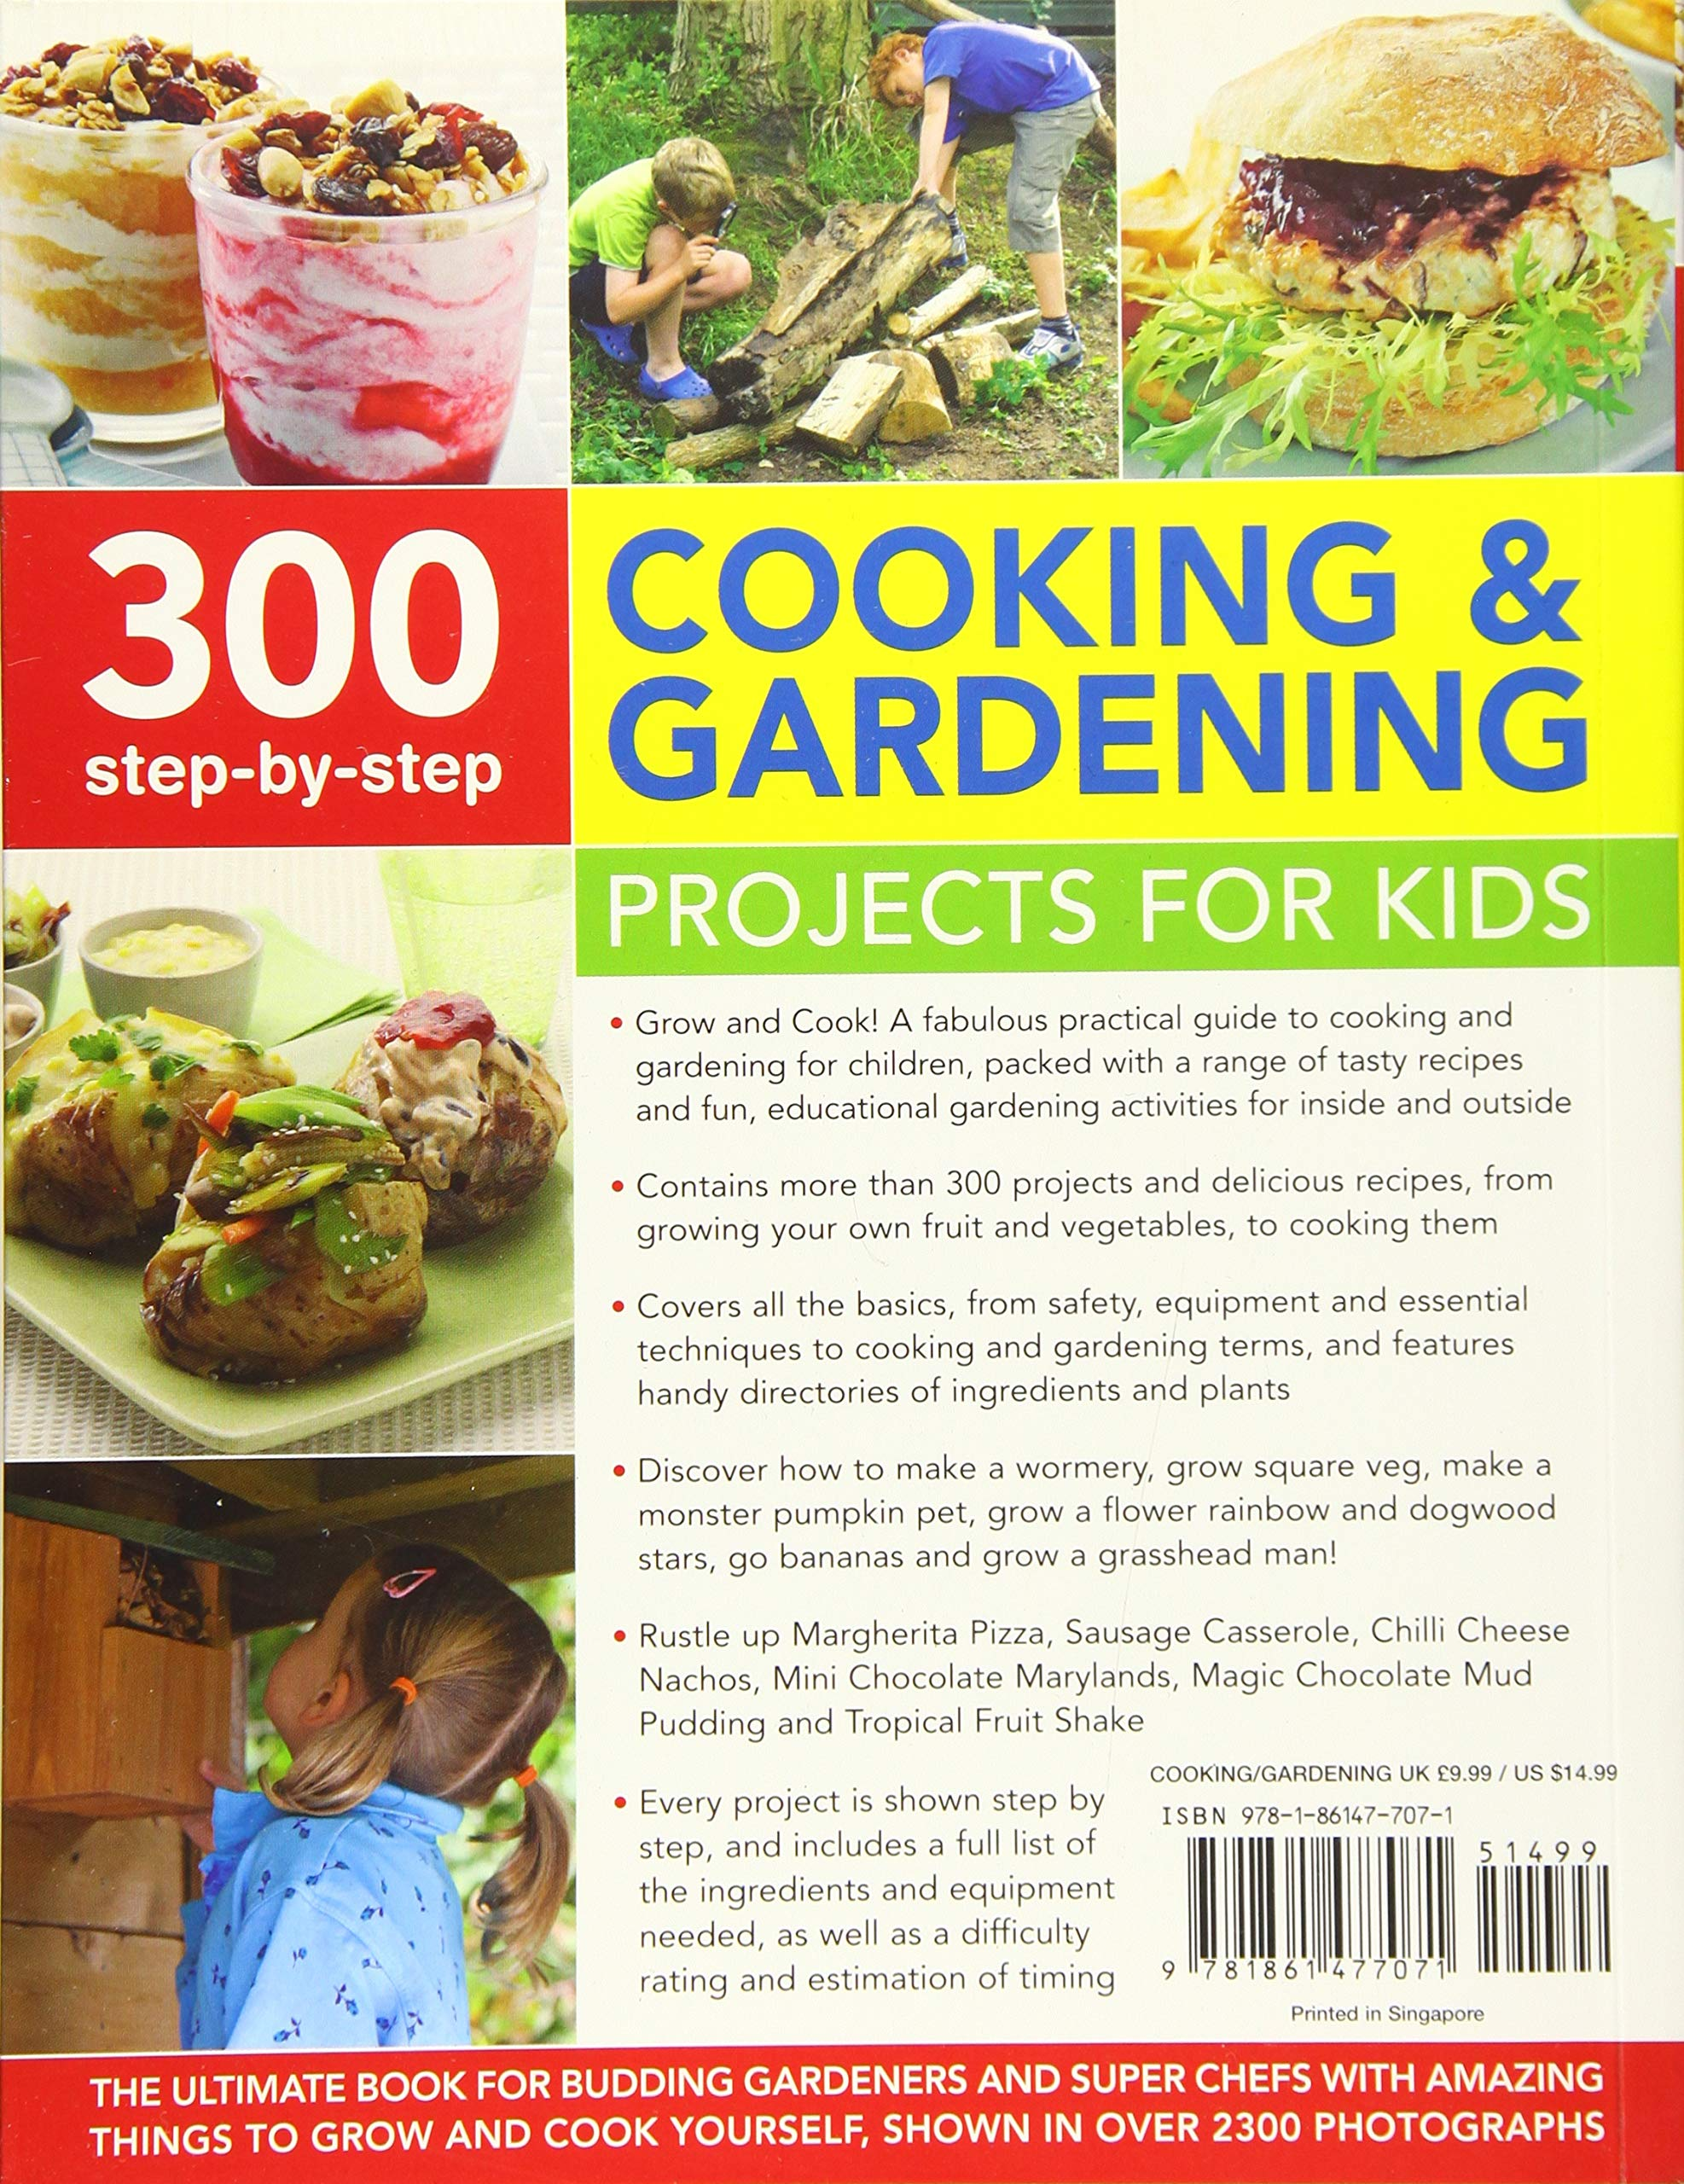 Ultimate Book of Step-by-Step Cooking /& Gardening Projects for Kids The Best-Ever Book For Budding Gardeners And Super Chefs With 300 Things To Grow And Cook Yourself Shown In Over 2300 Photographs